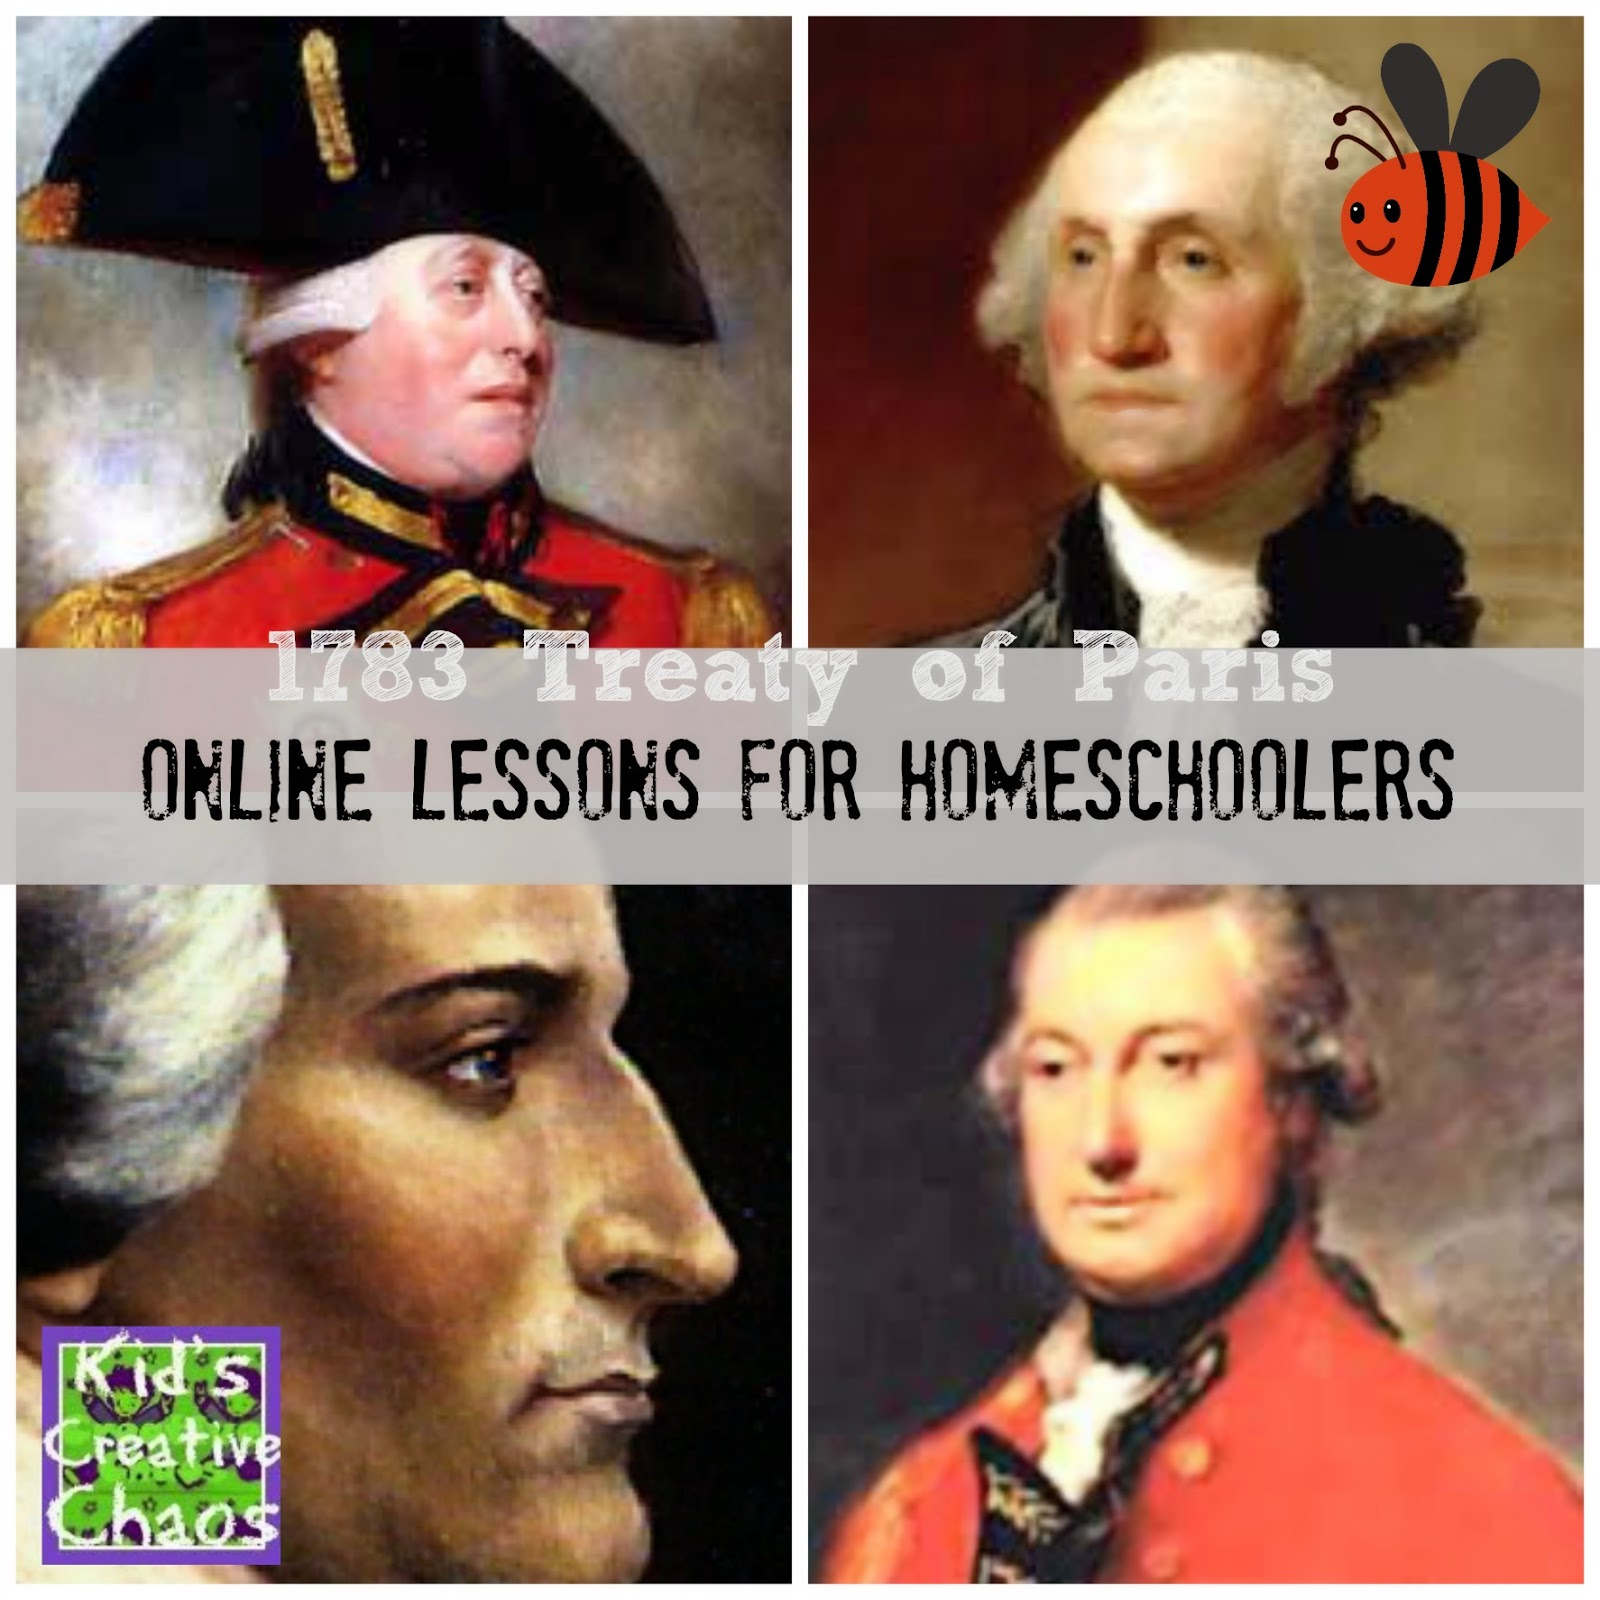 Social Studies for Kids: Treaty of Paris Free Online Lesson for Homeschoolers